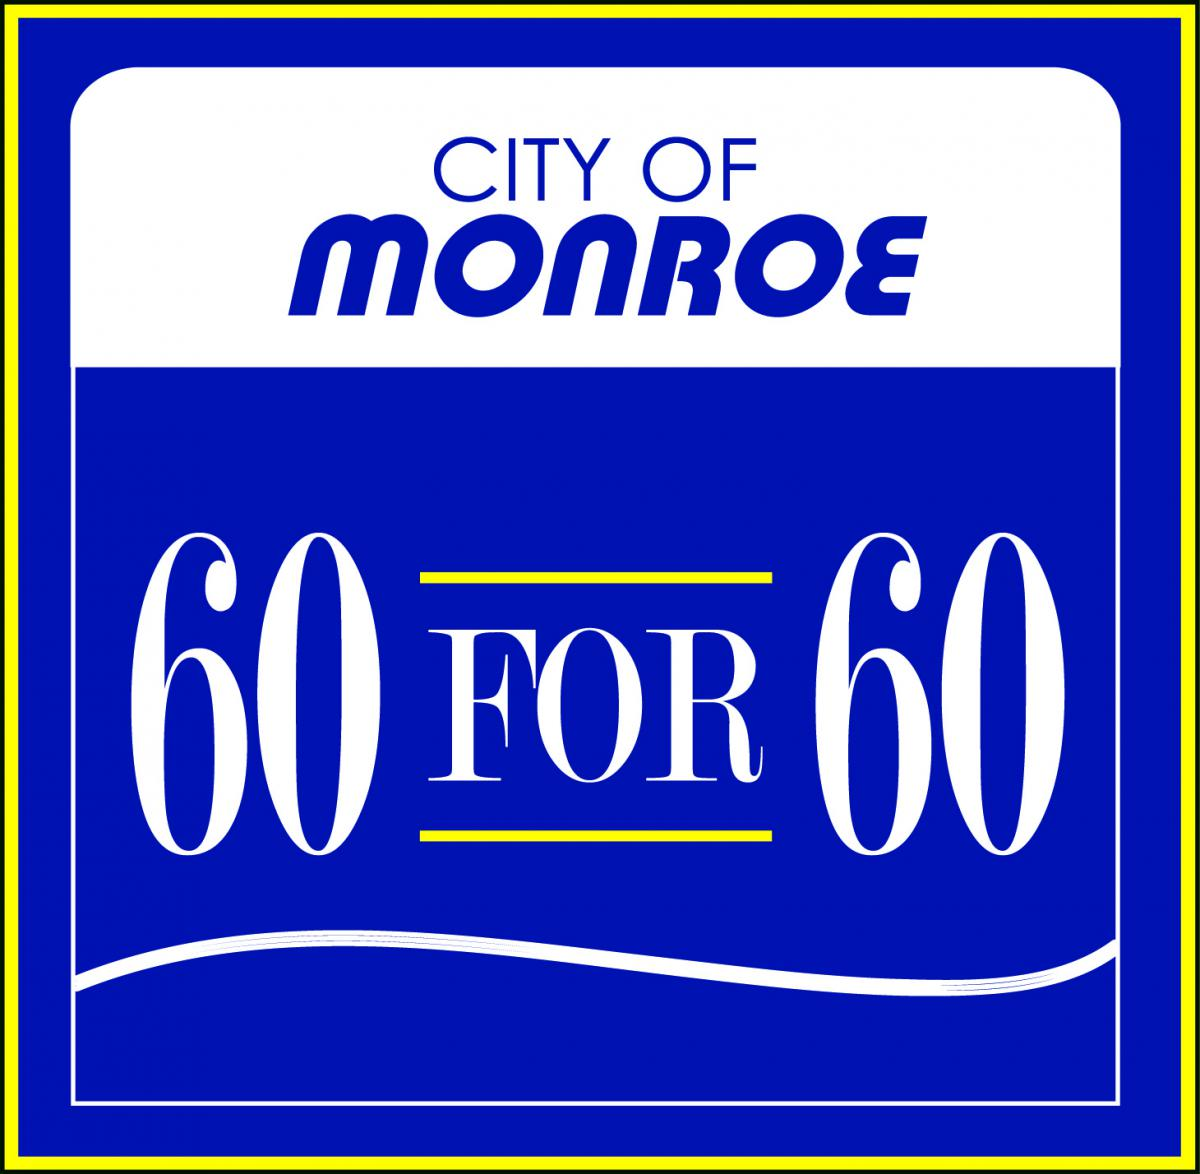 city of monroe - 60 for 60